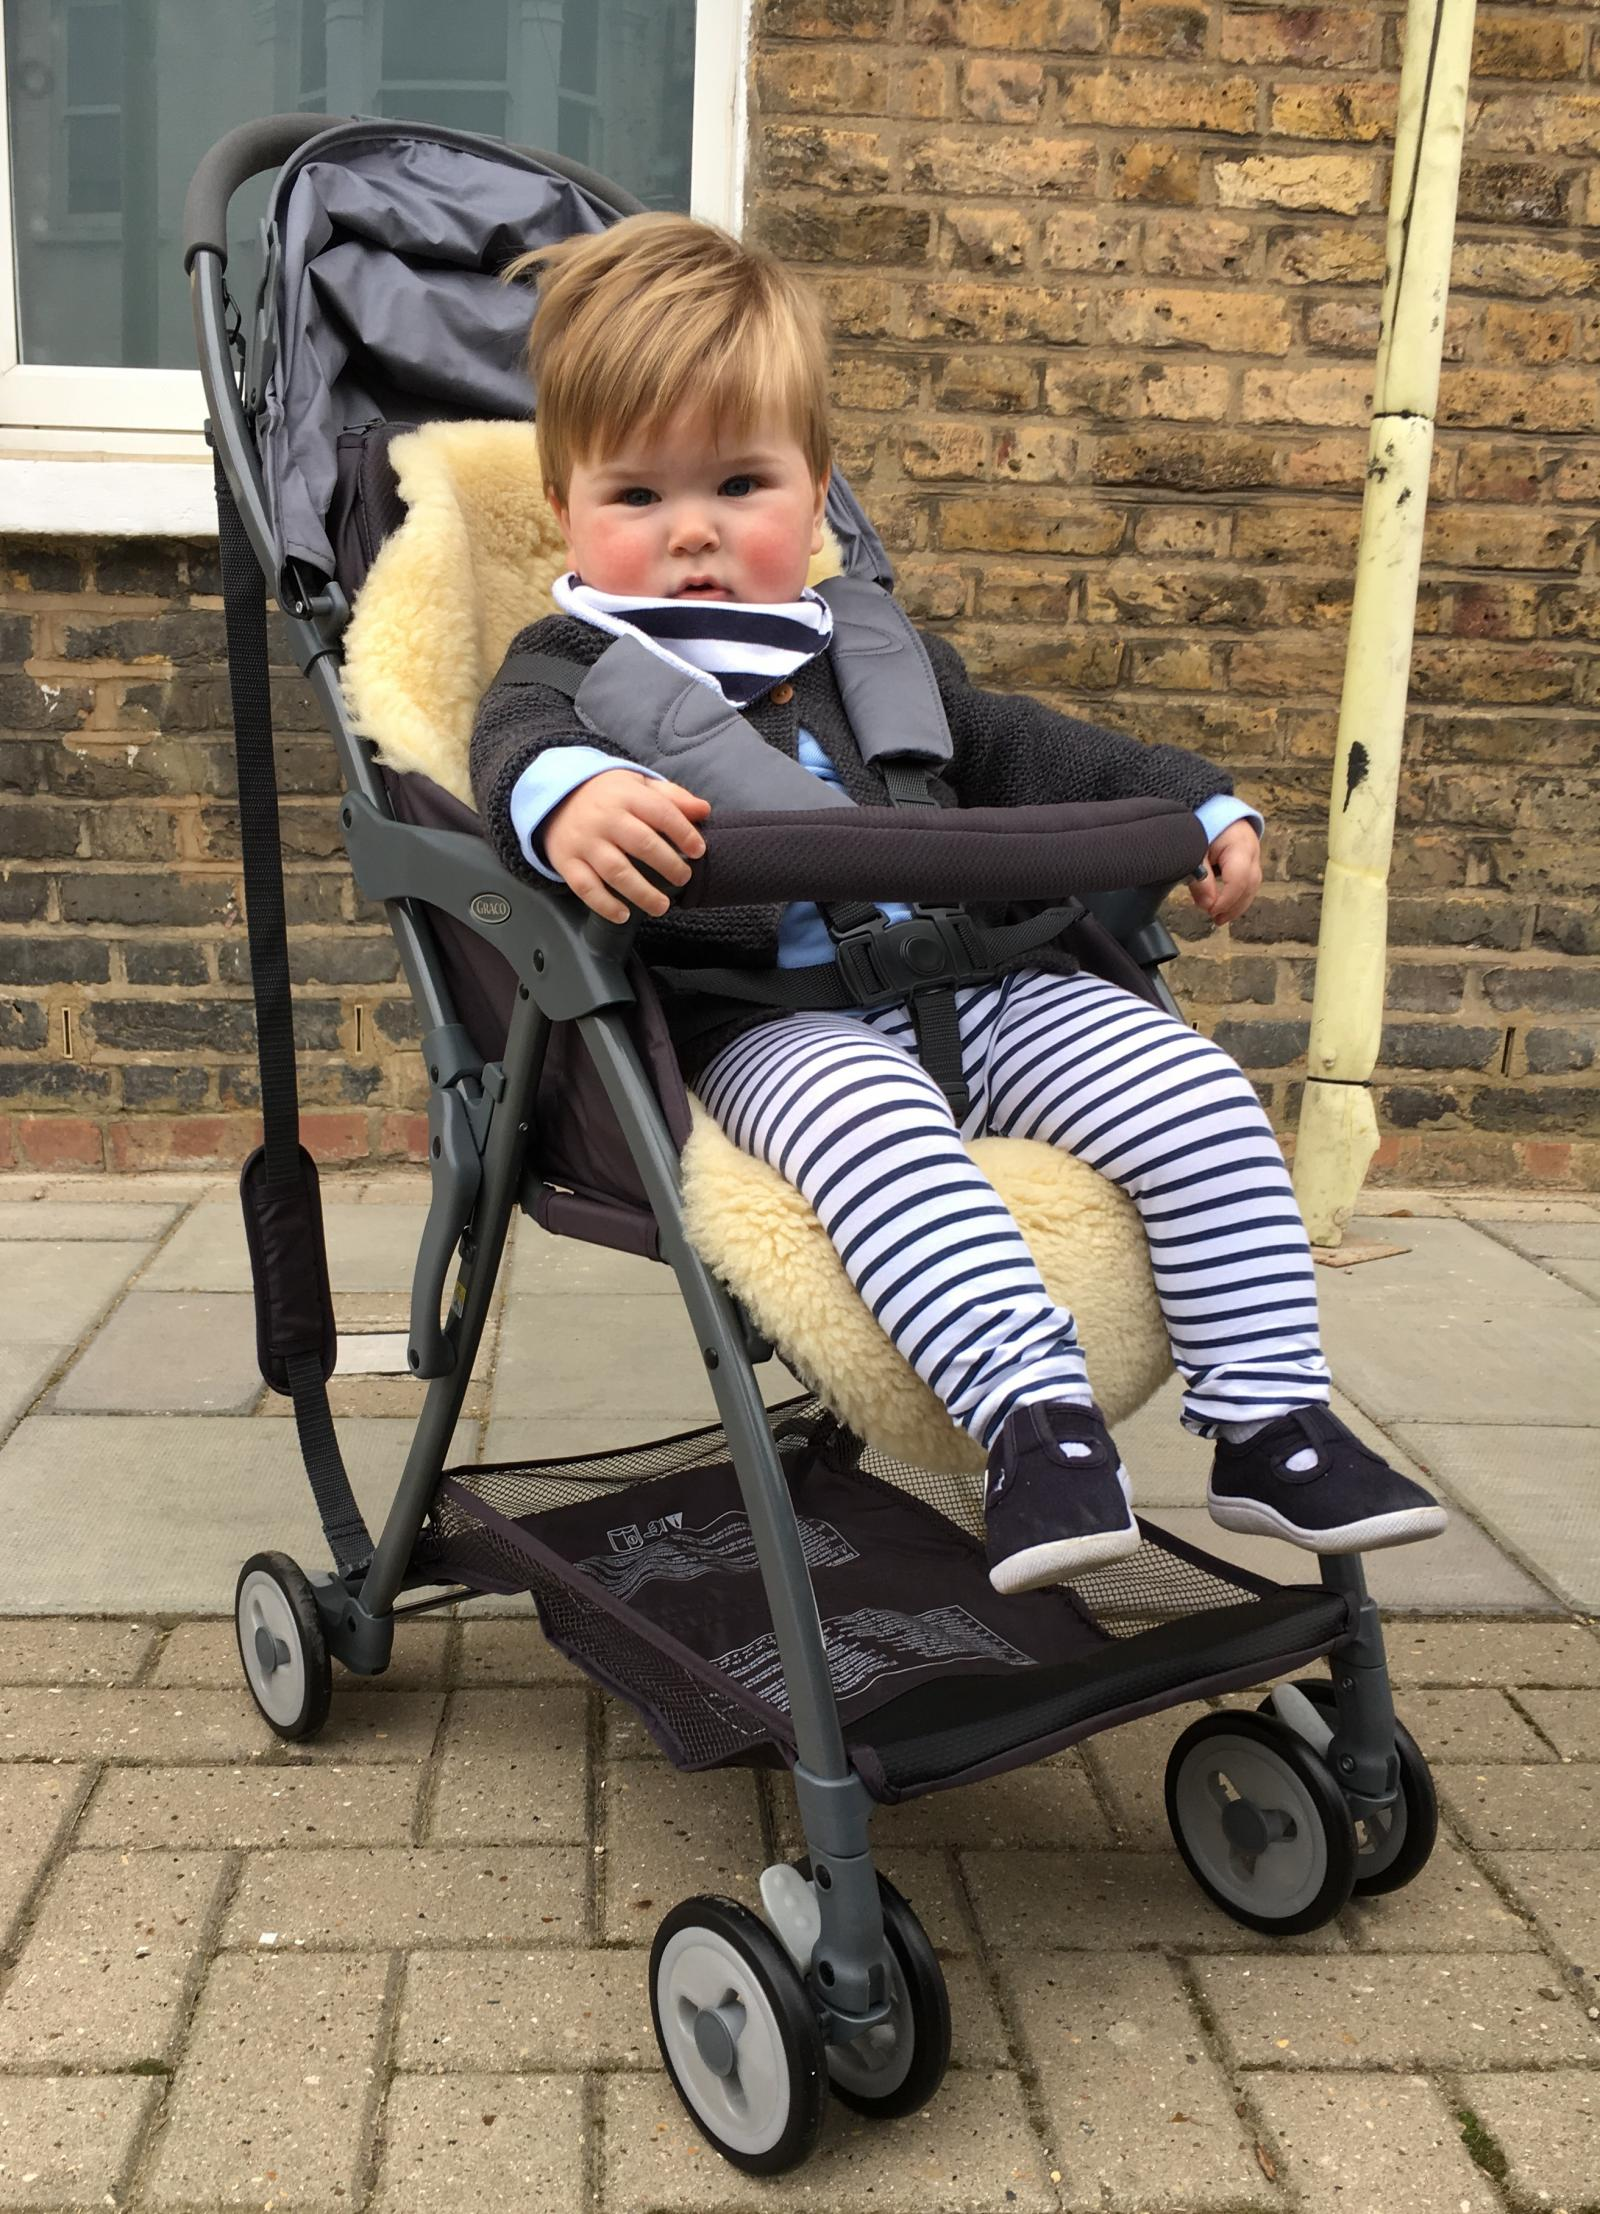 Featherweight pushchair from Graco